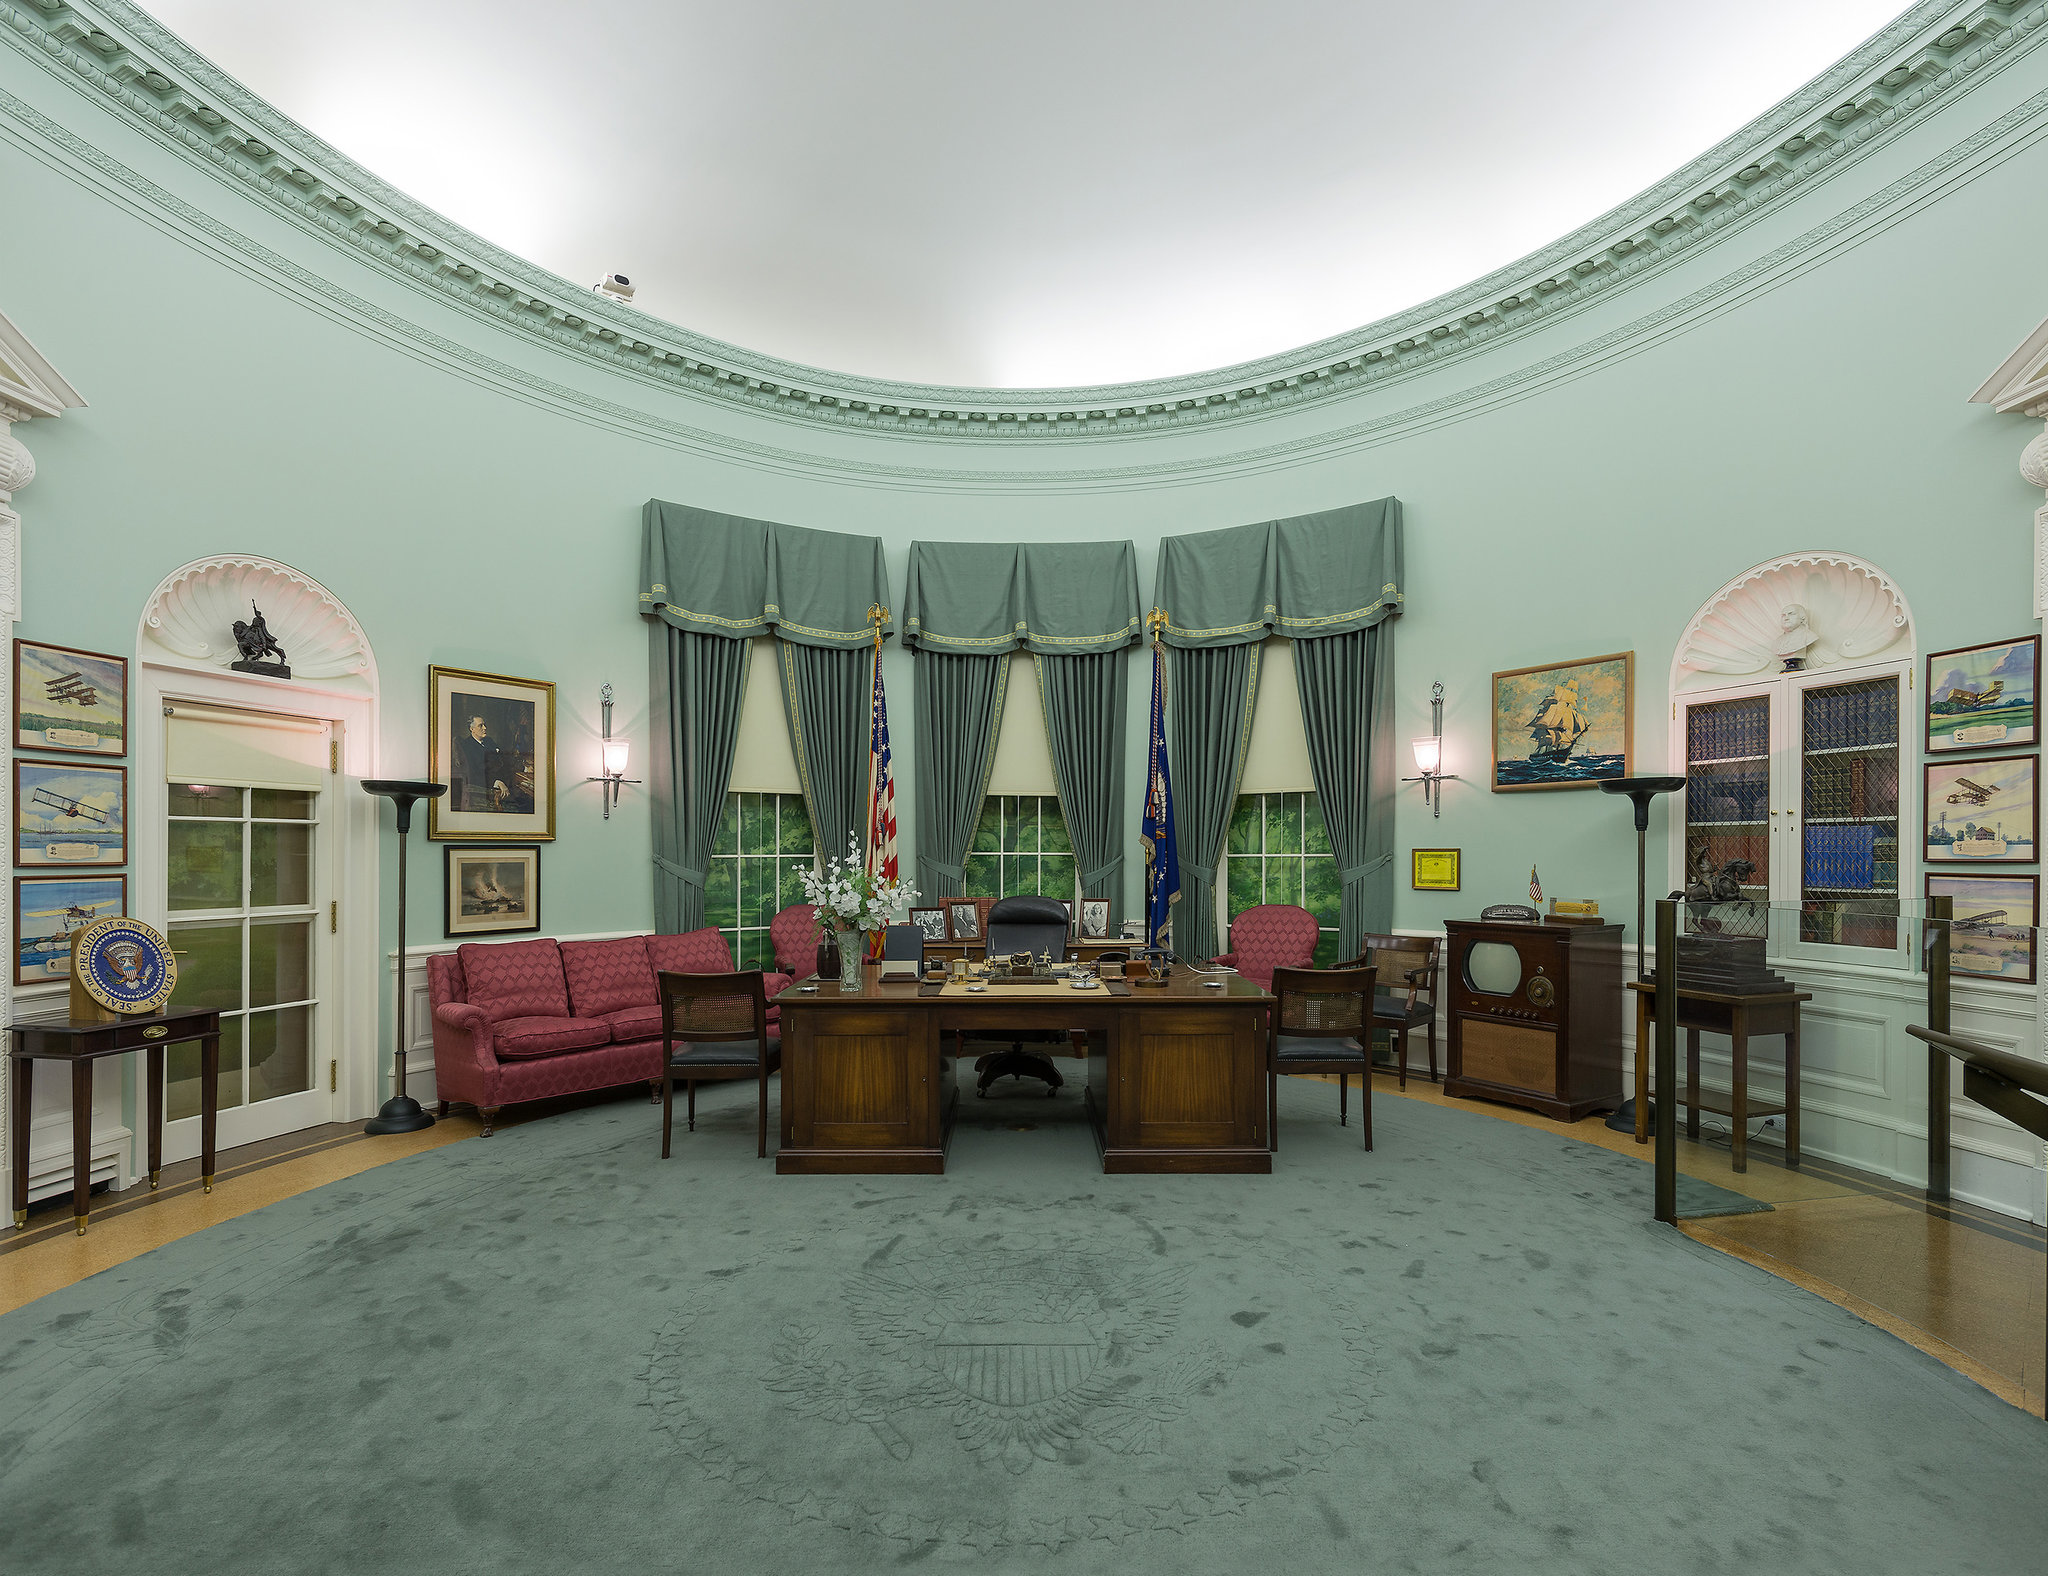 The museum features many attractions and exhibits including a scale replica of President Truman's Oval Office while in the White House pictured here.